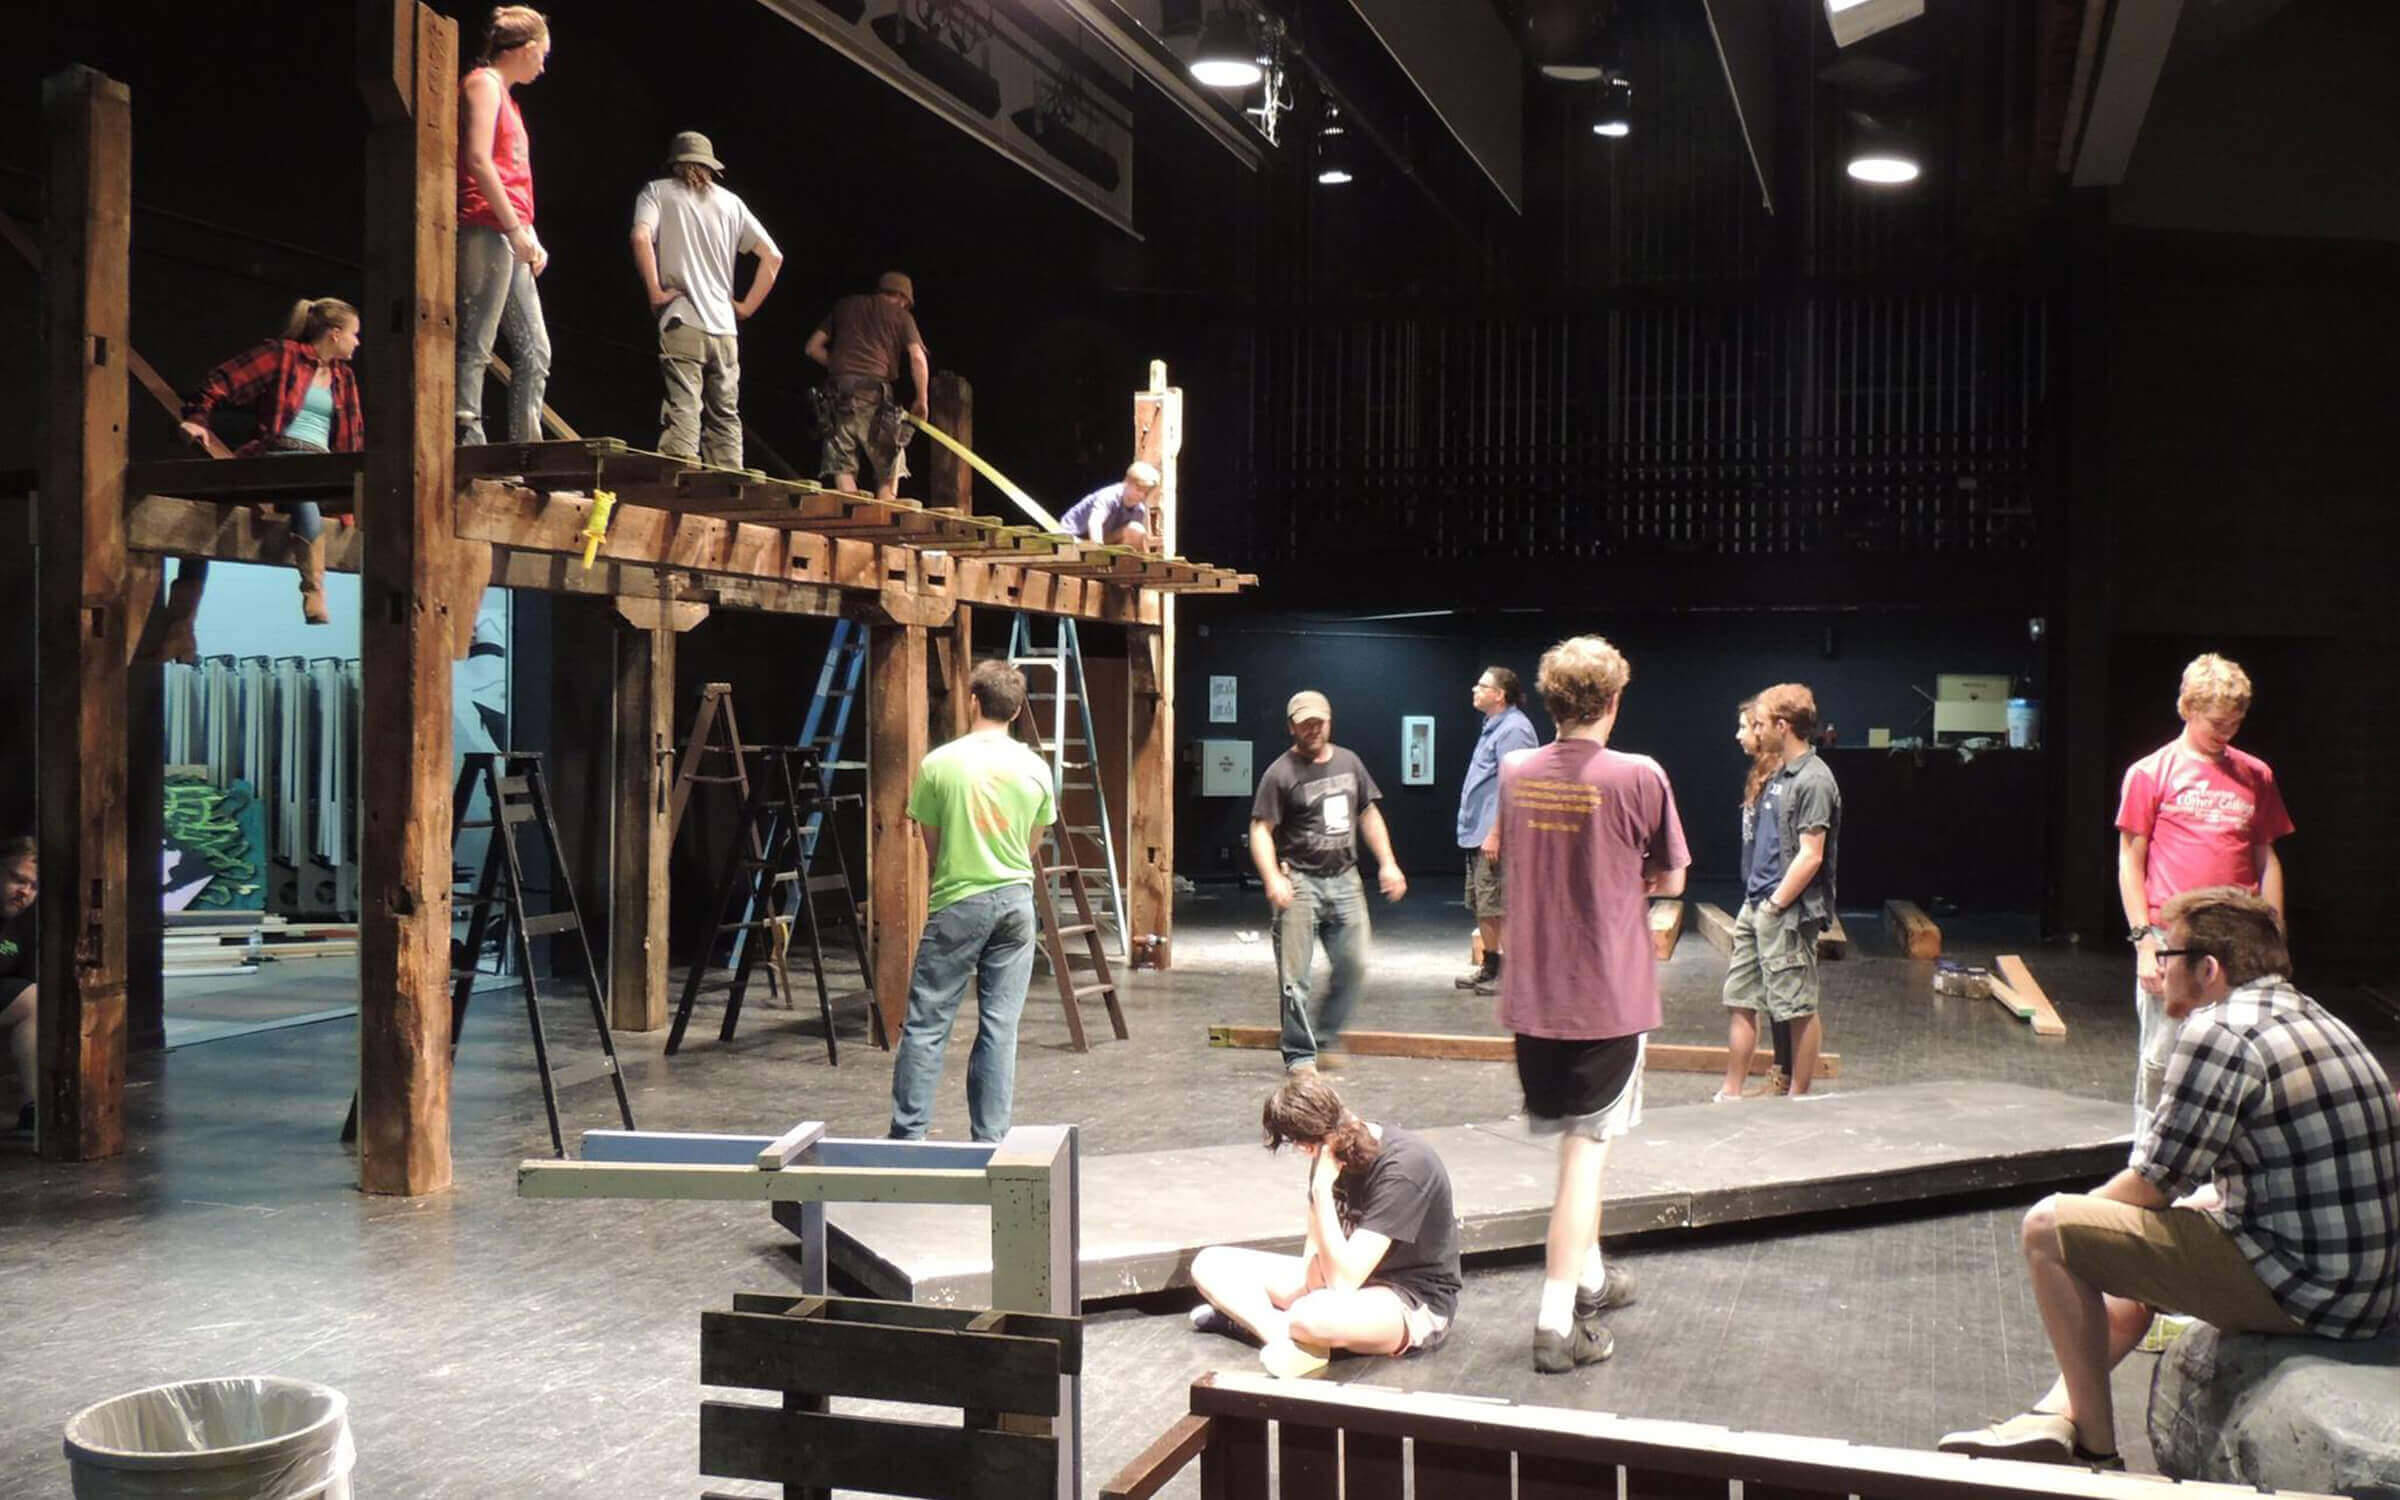 People building Les Miserables set at Decorah High School.